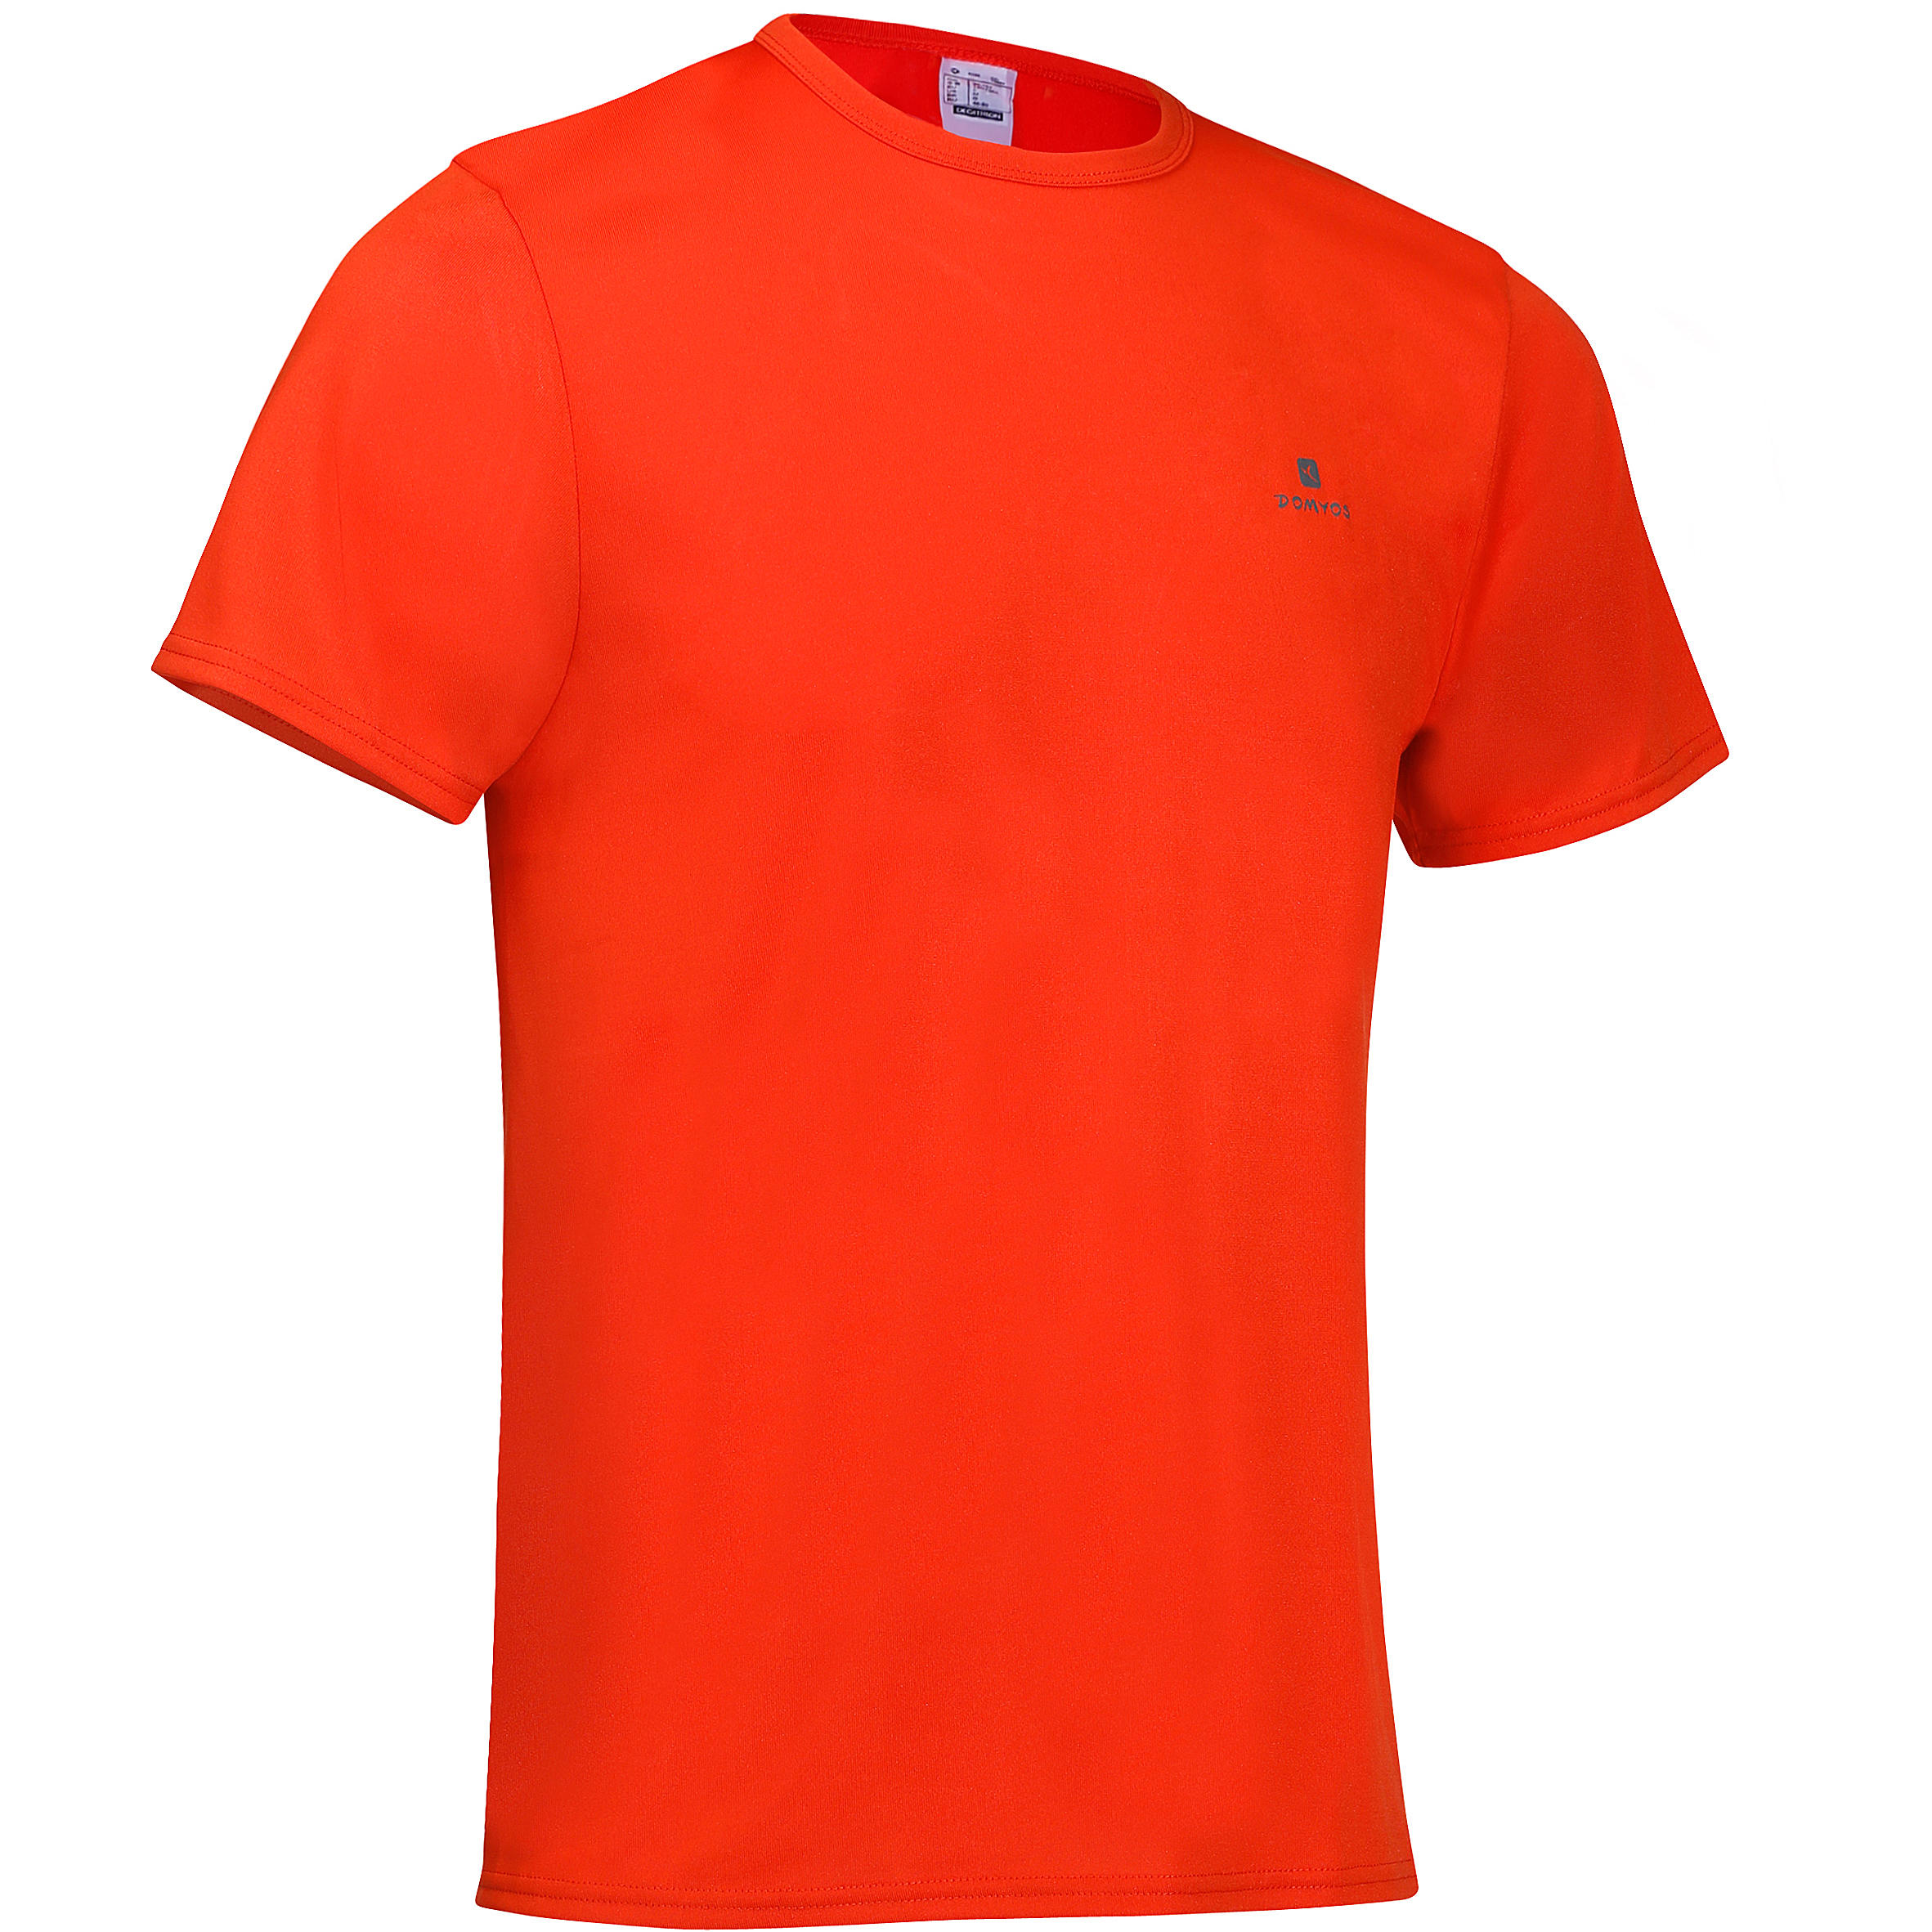 FTS100 Fitness Cardio T-Shirt - Red